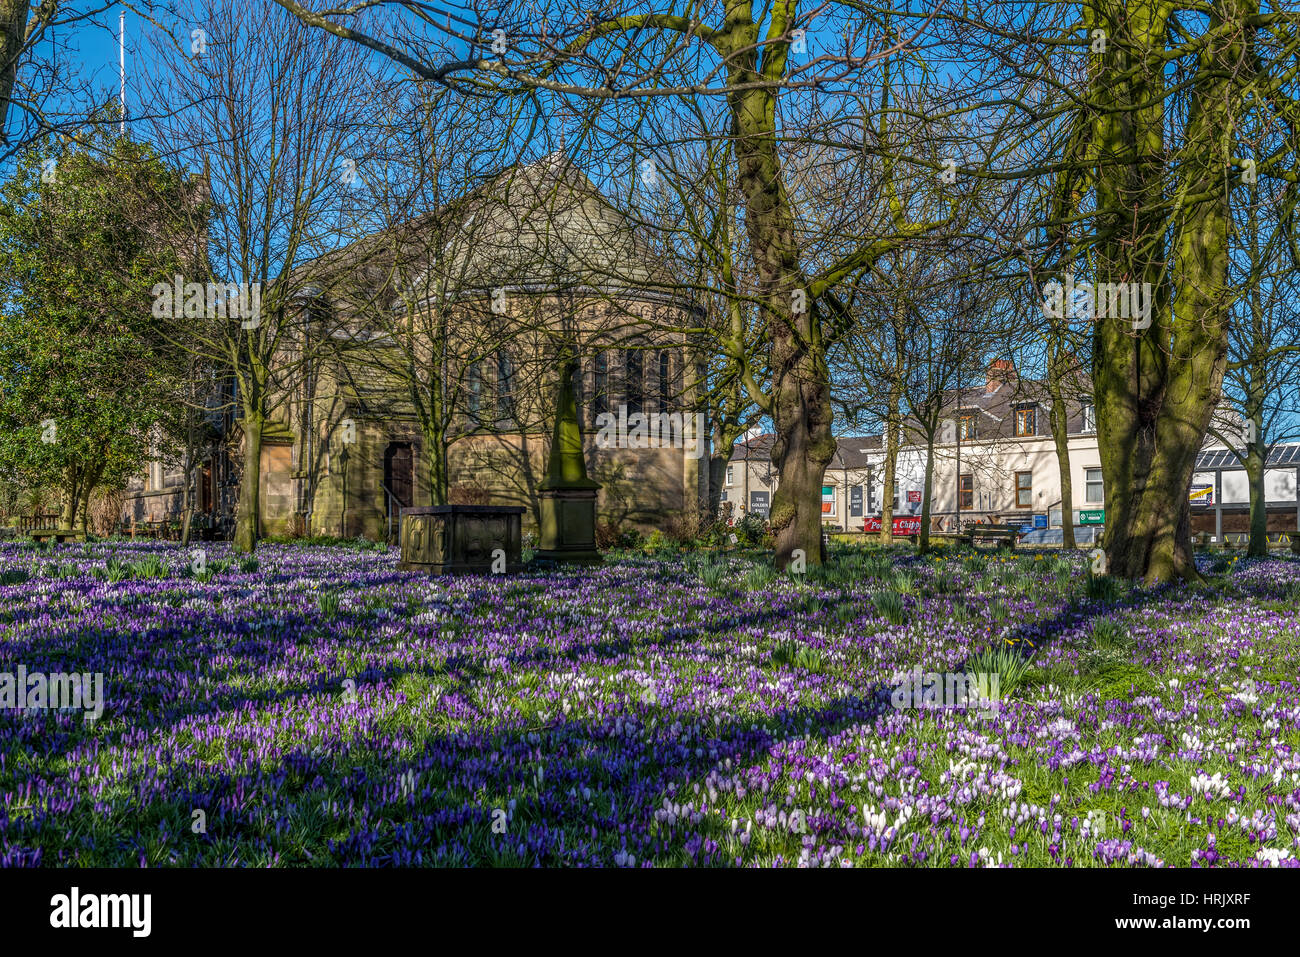 A carpet of Crocus in the churchyard at St.Chad's in Poulton-le-Fylde Lancashire - Stock Image